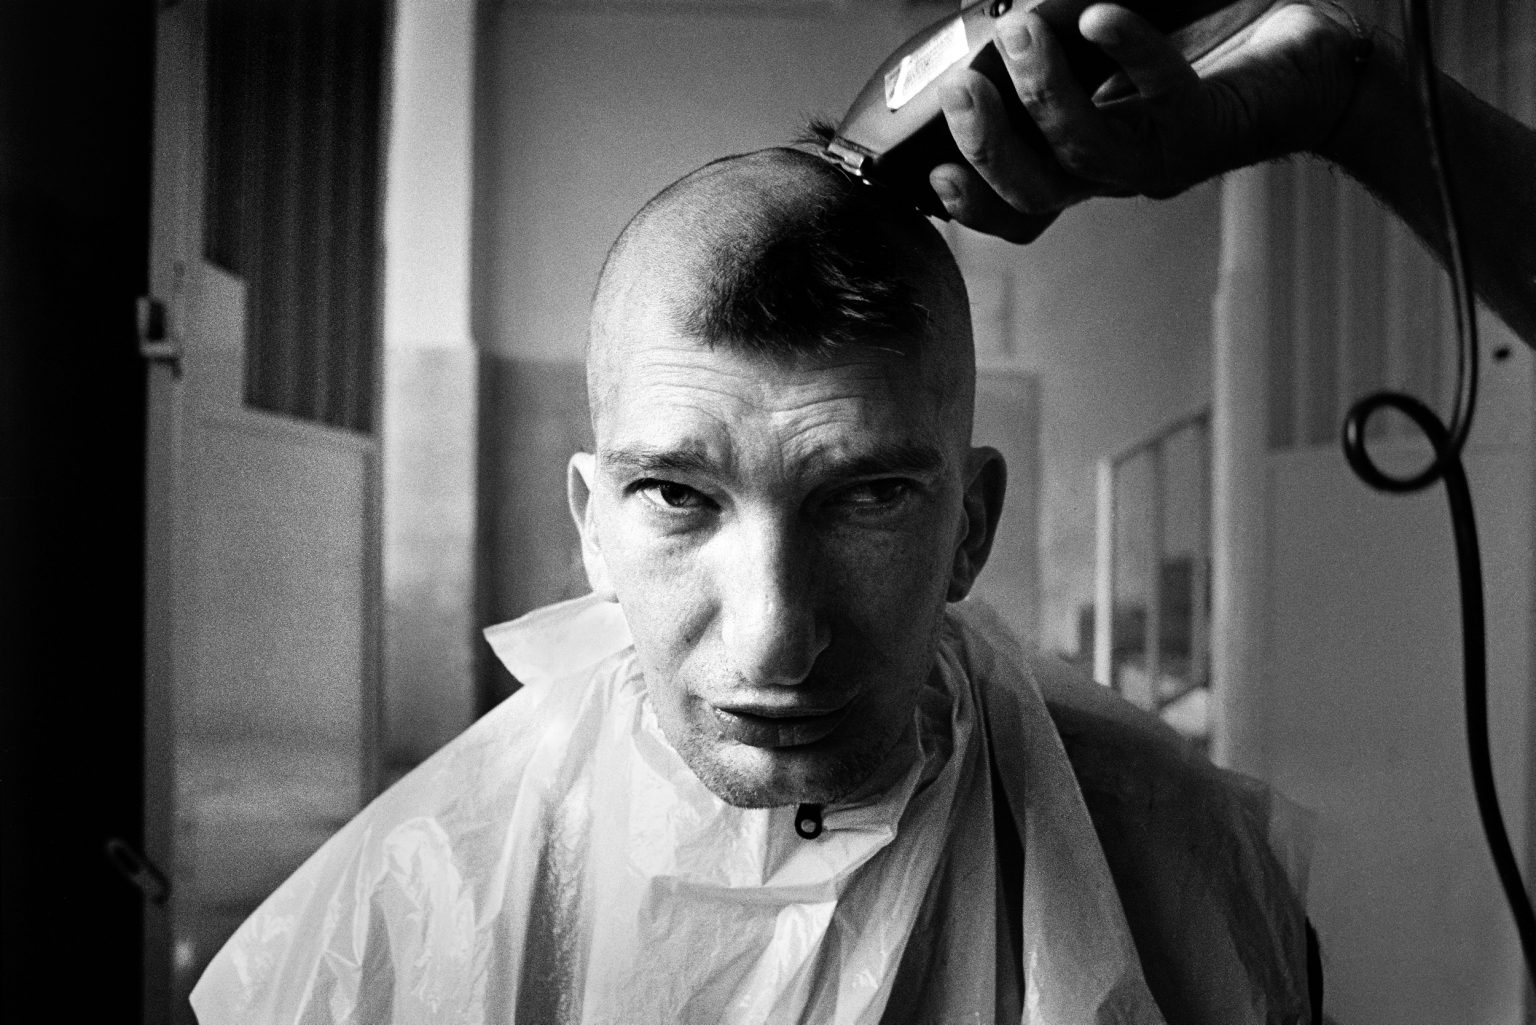 An inmate gets shaved by the institute's barber. Judicial Psychiatric Hospital. Aversa, Caserta, Italy, 2006